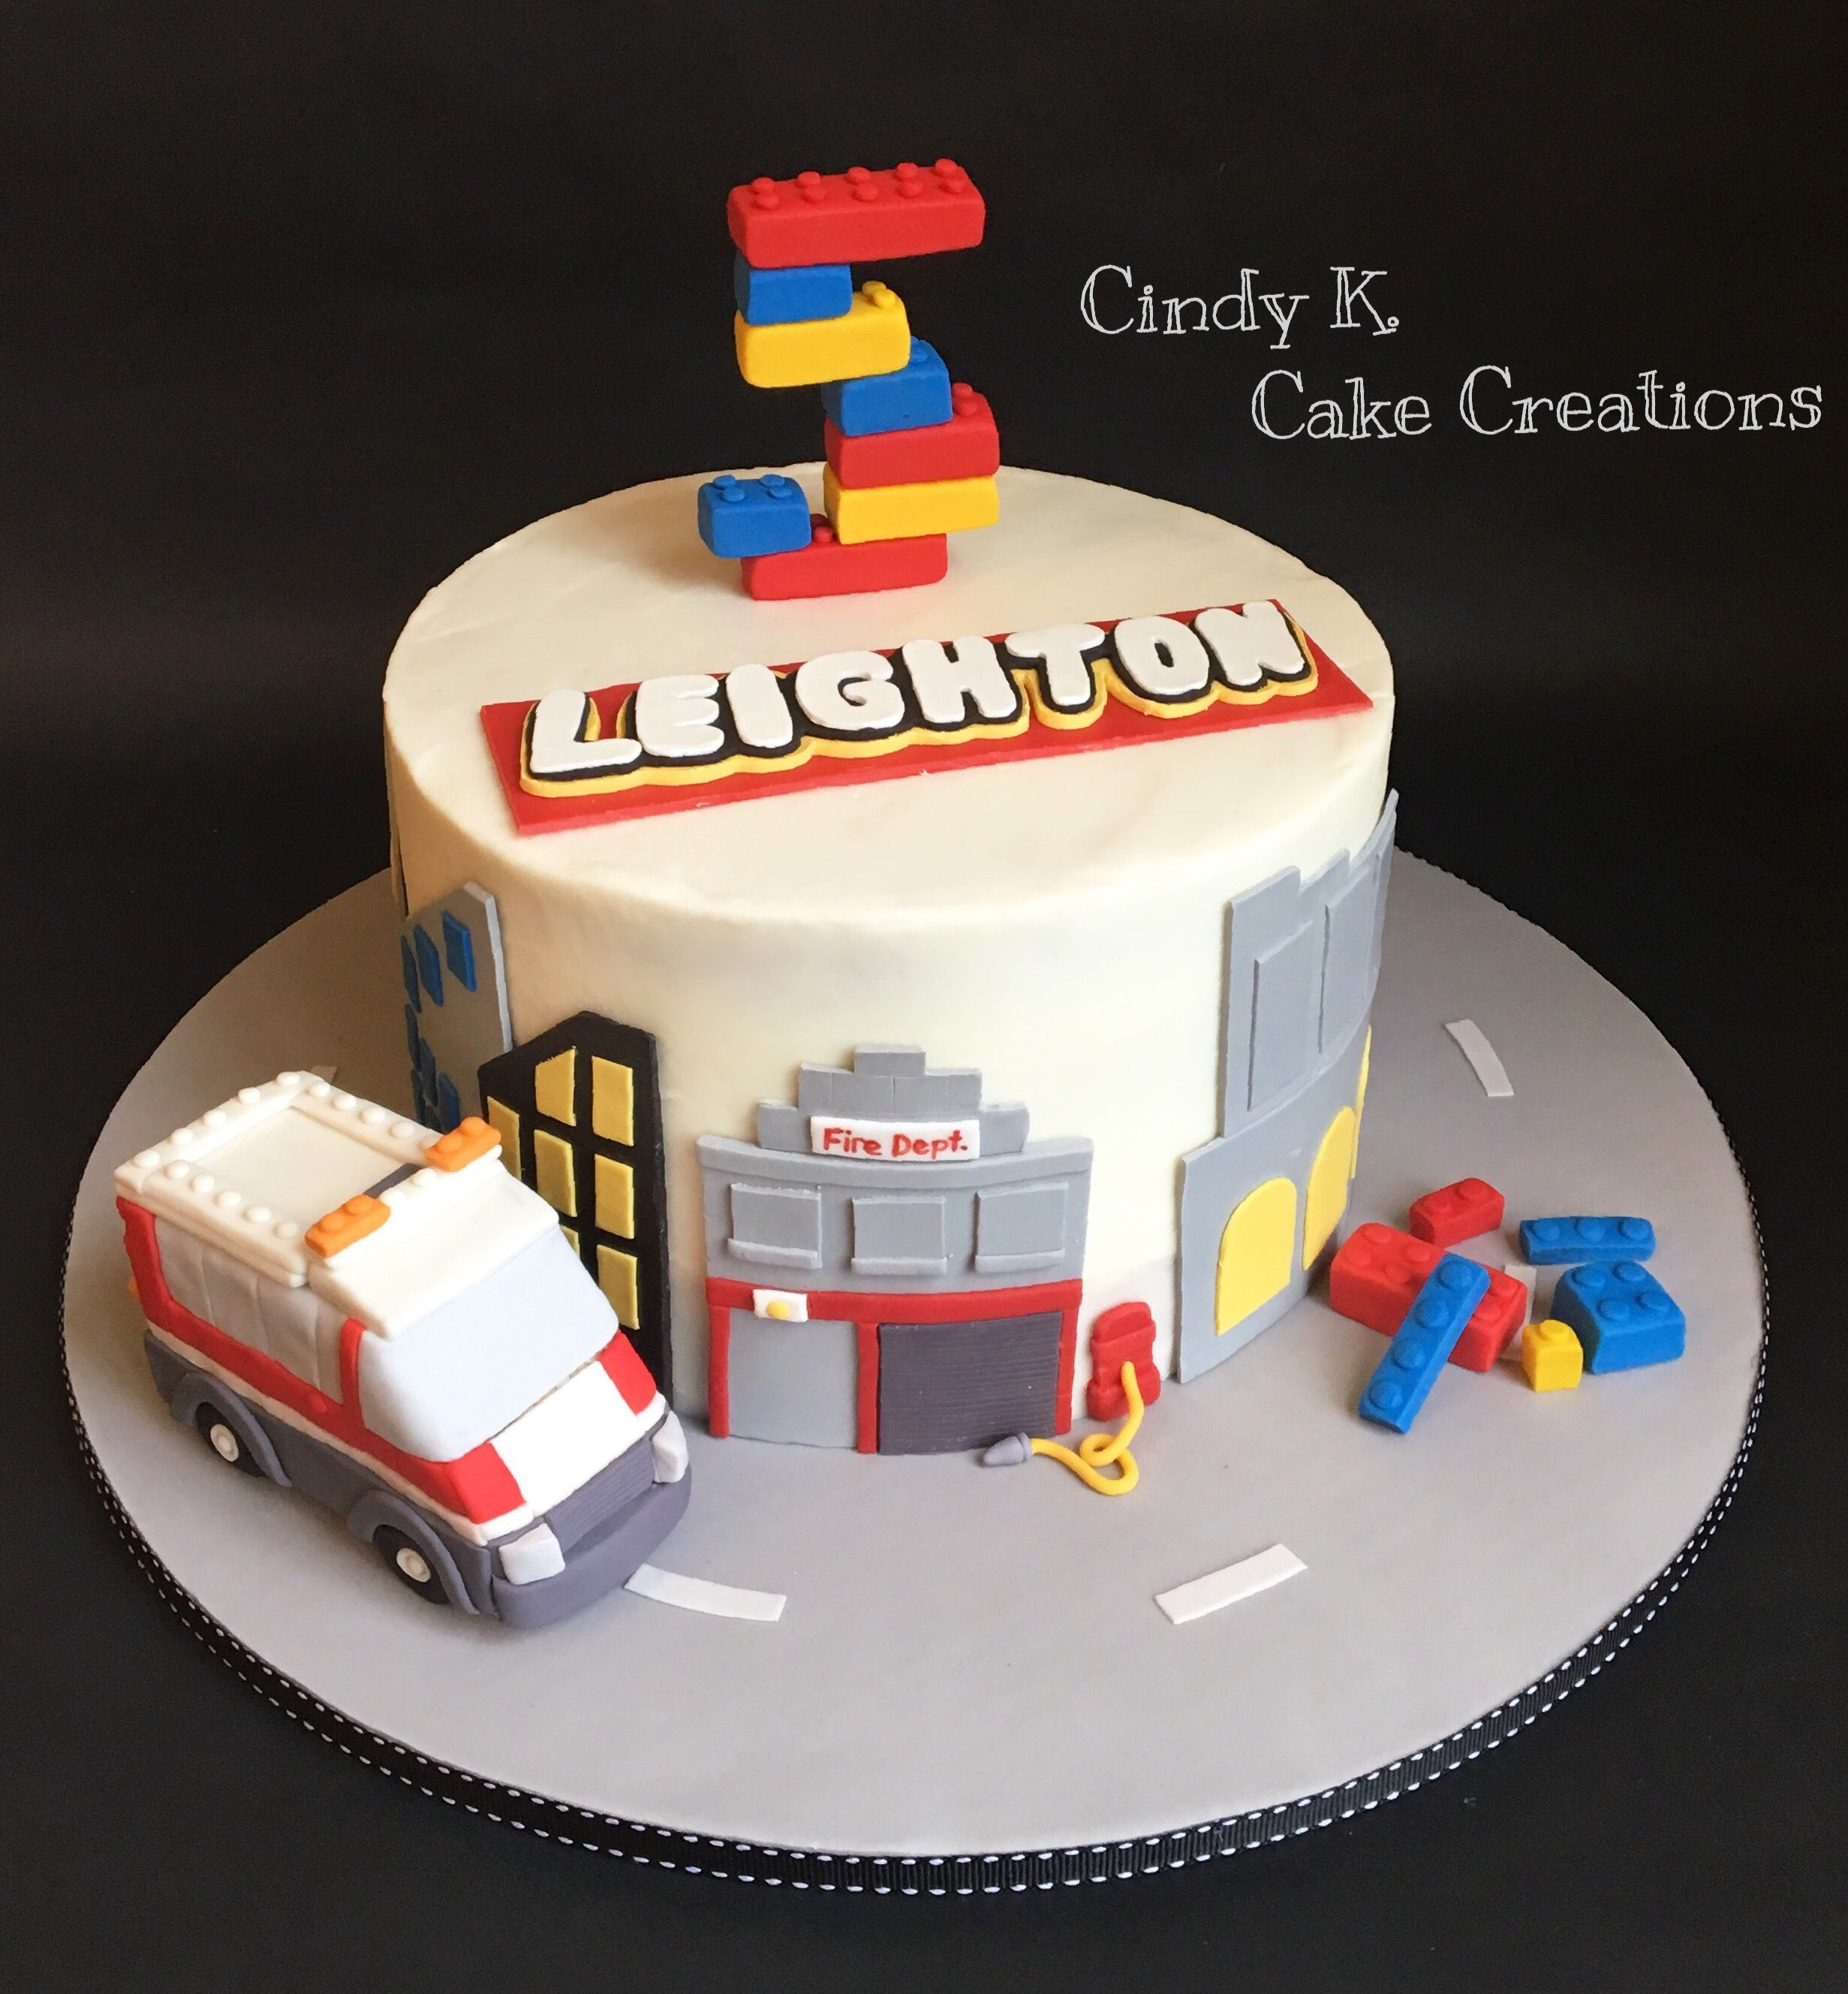 Lego City Cake Made By Cindy K Cake Creations With Images